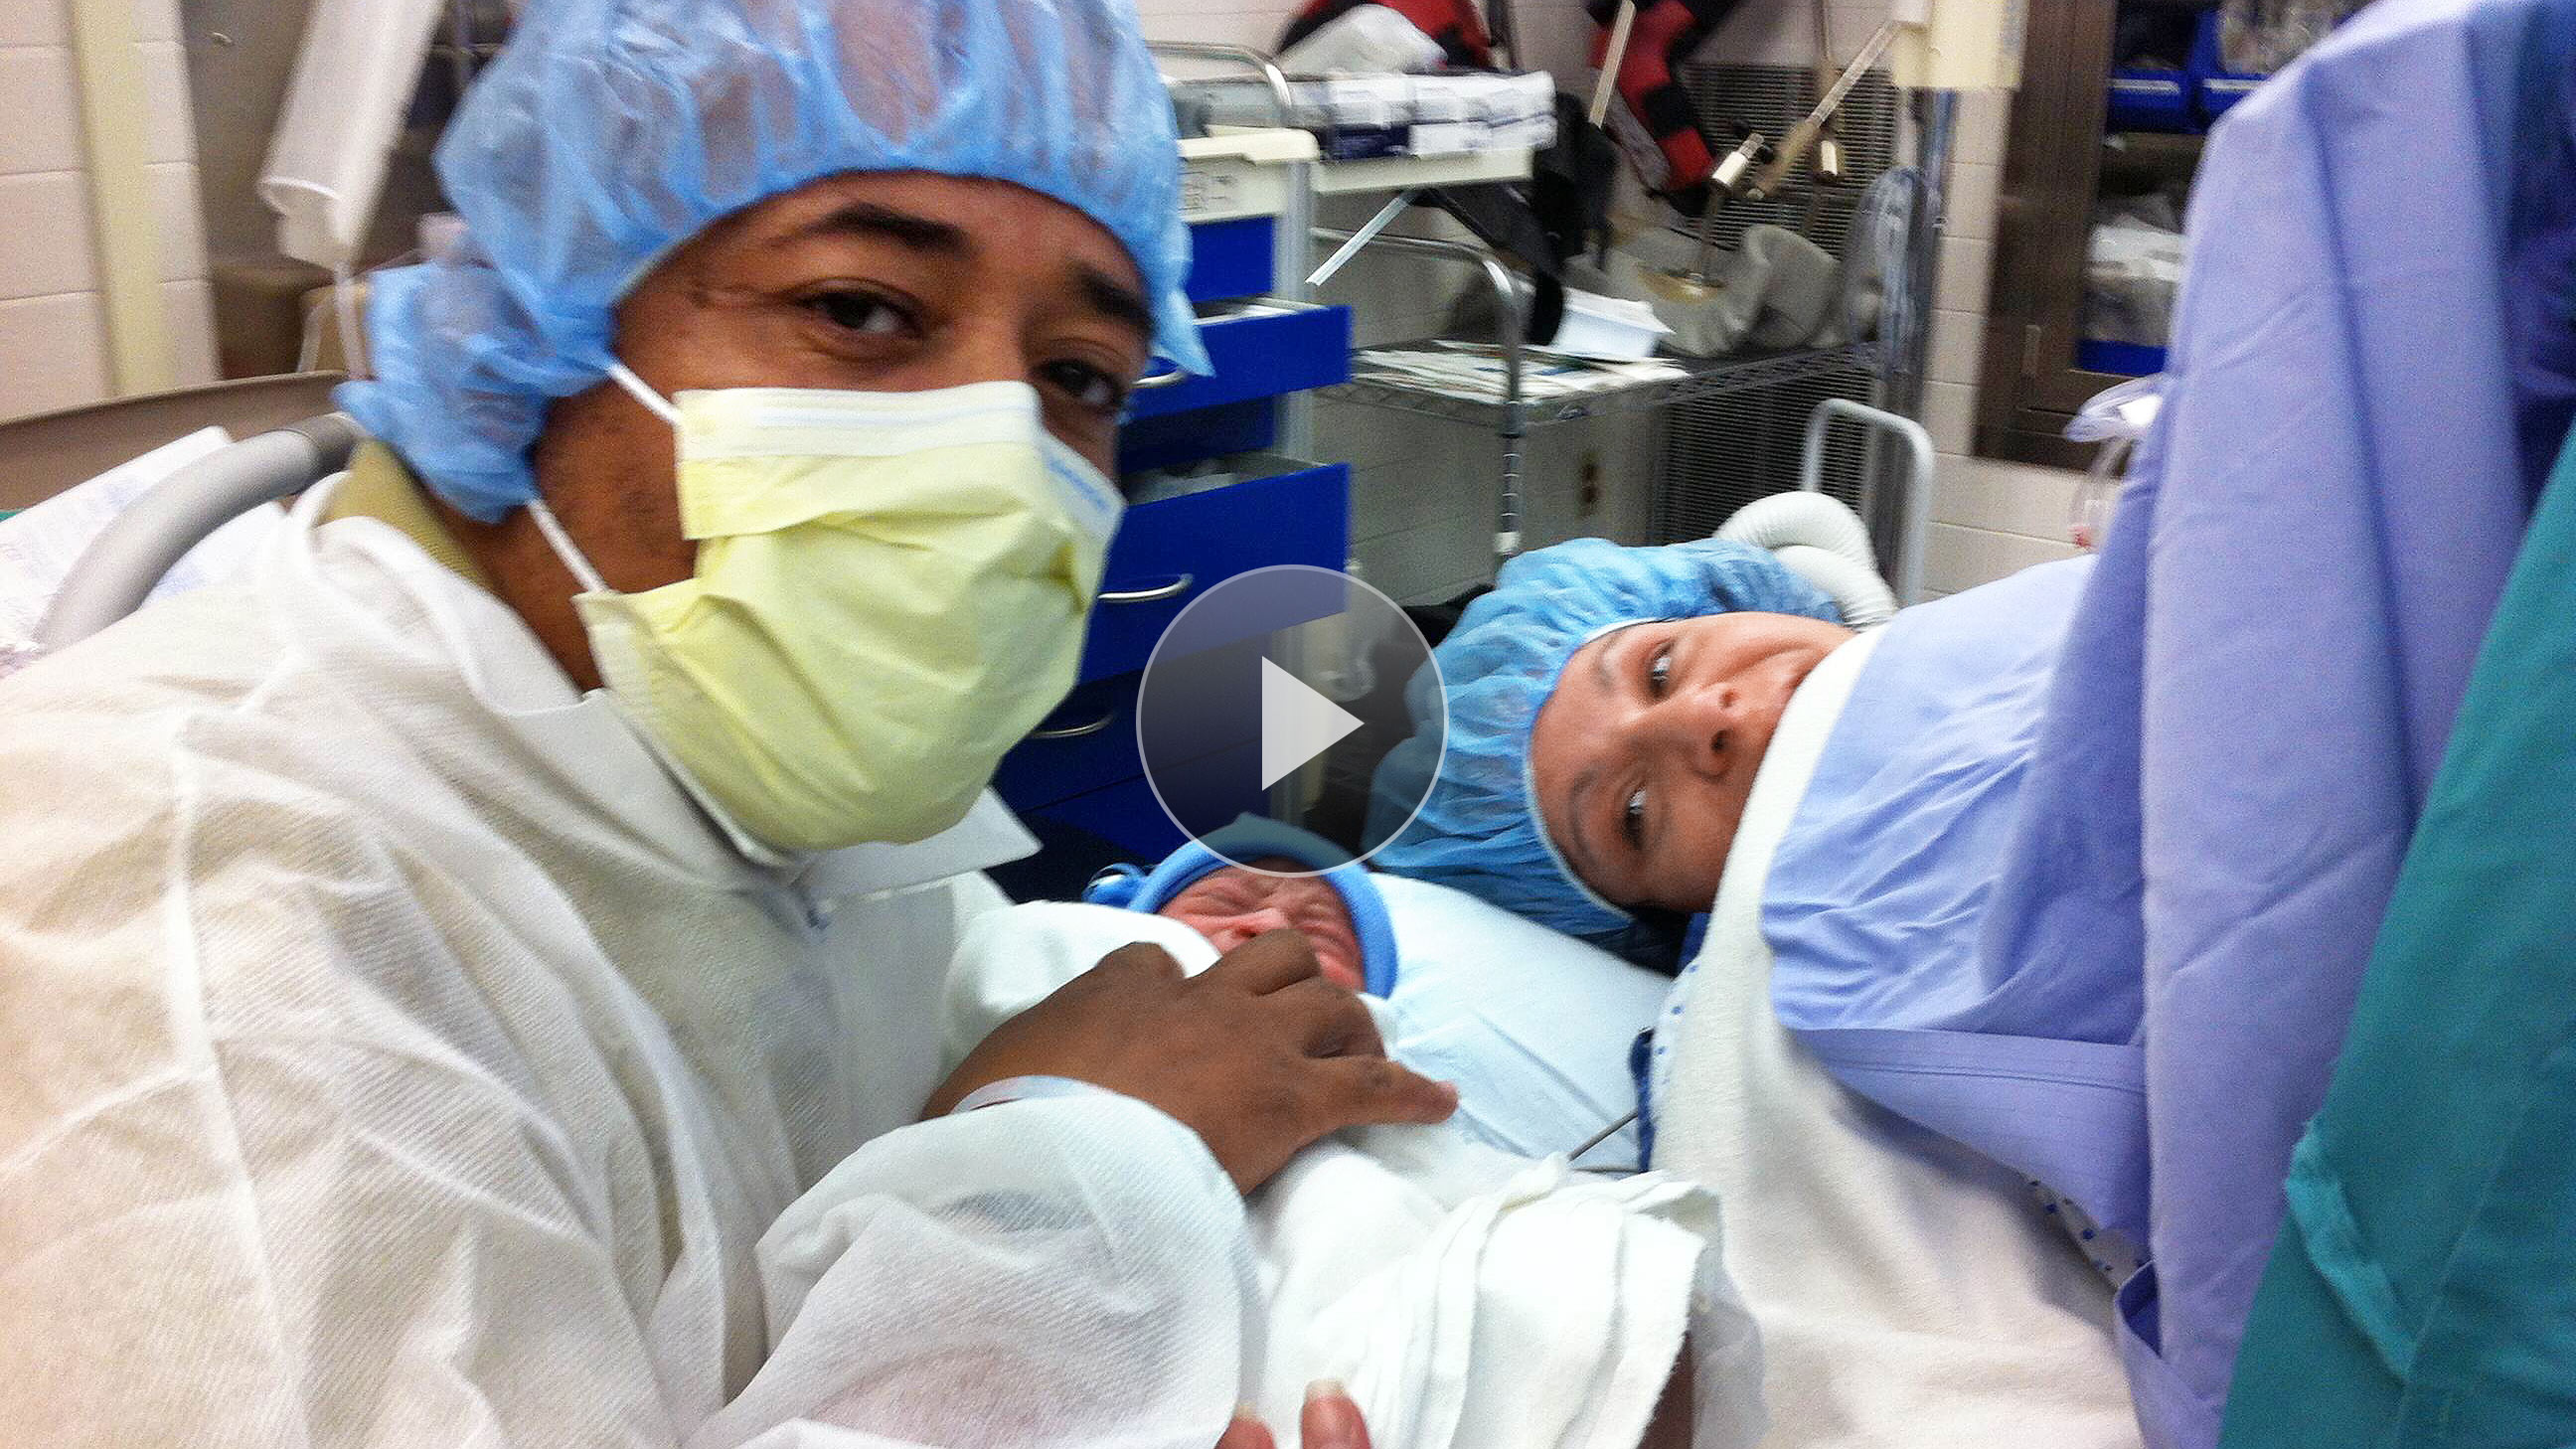 Birth Stories: Emergency C-section